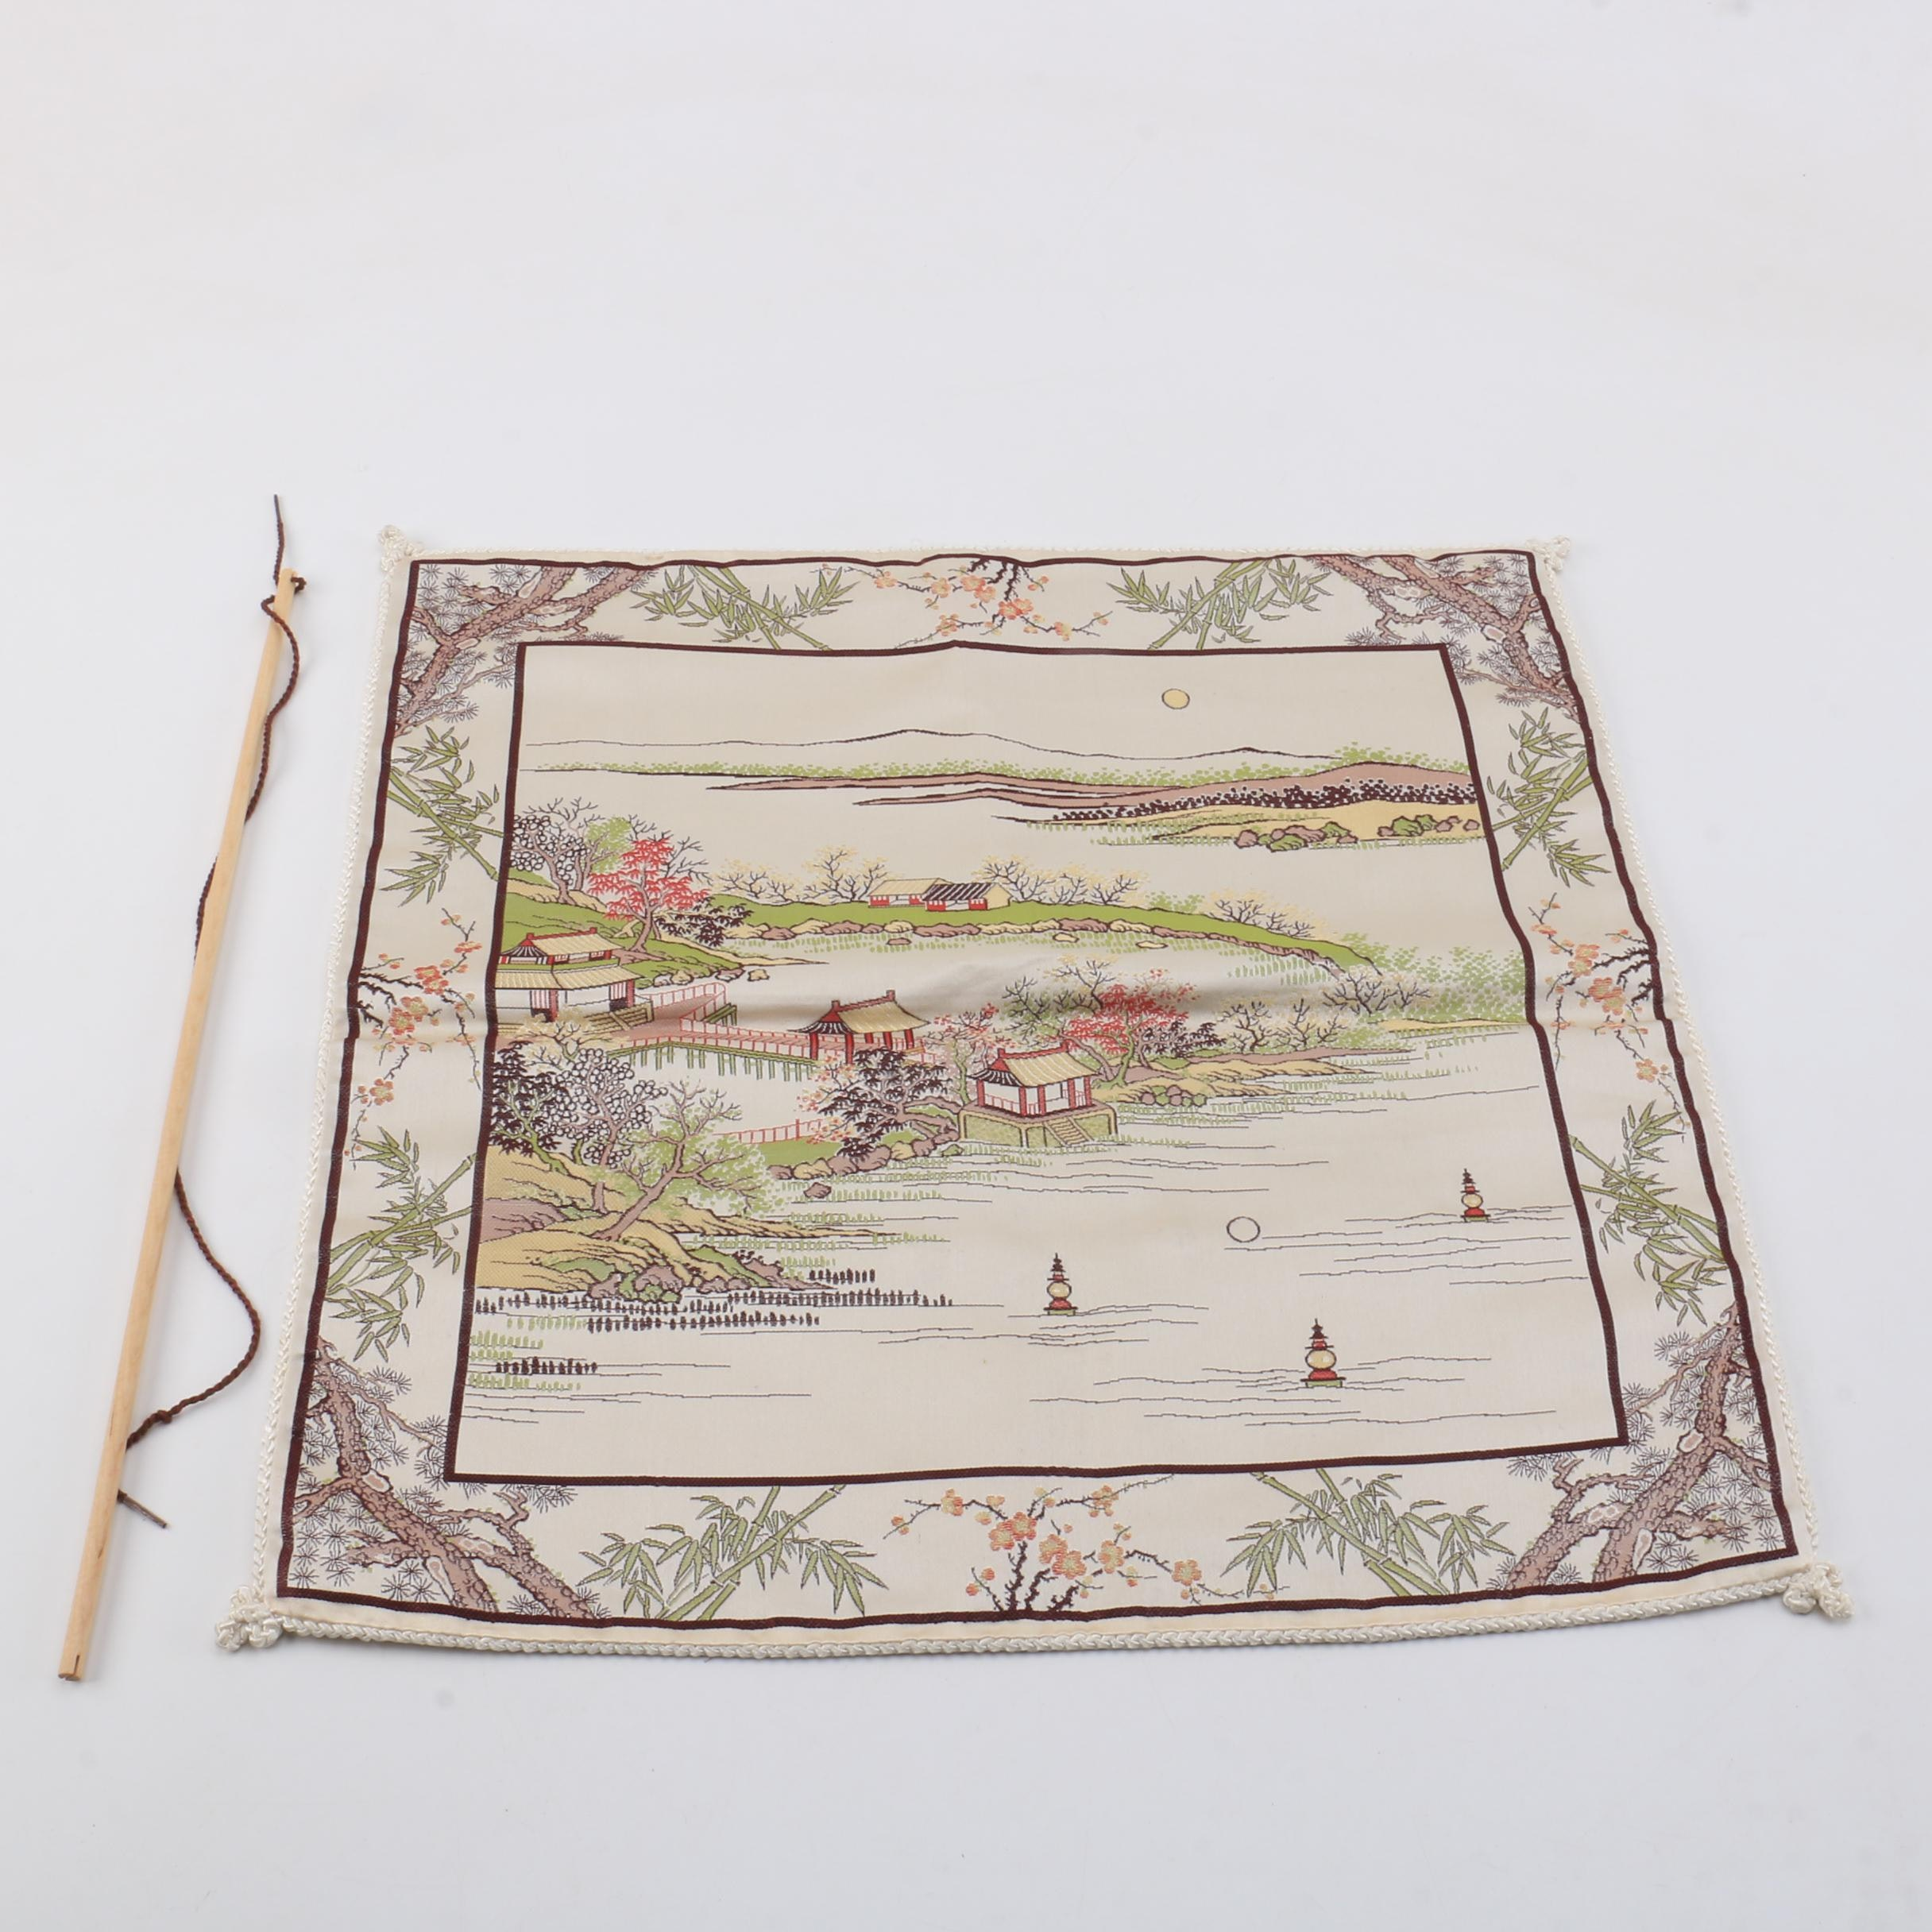 Chinese Silk Embroidered Wall Hanging by Brocaded Flowers